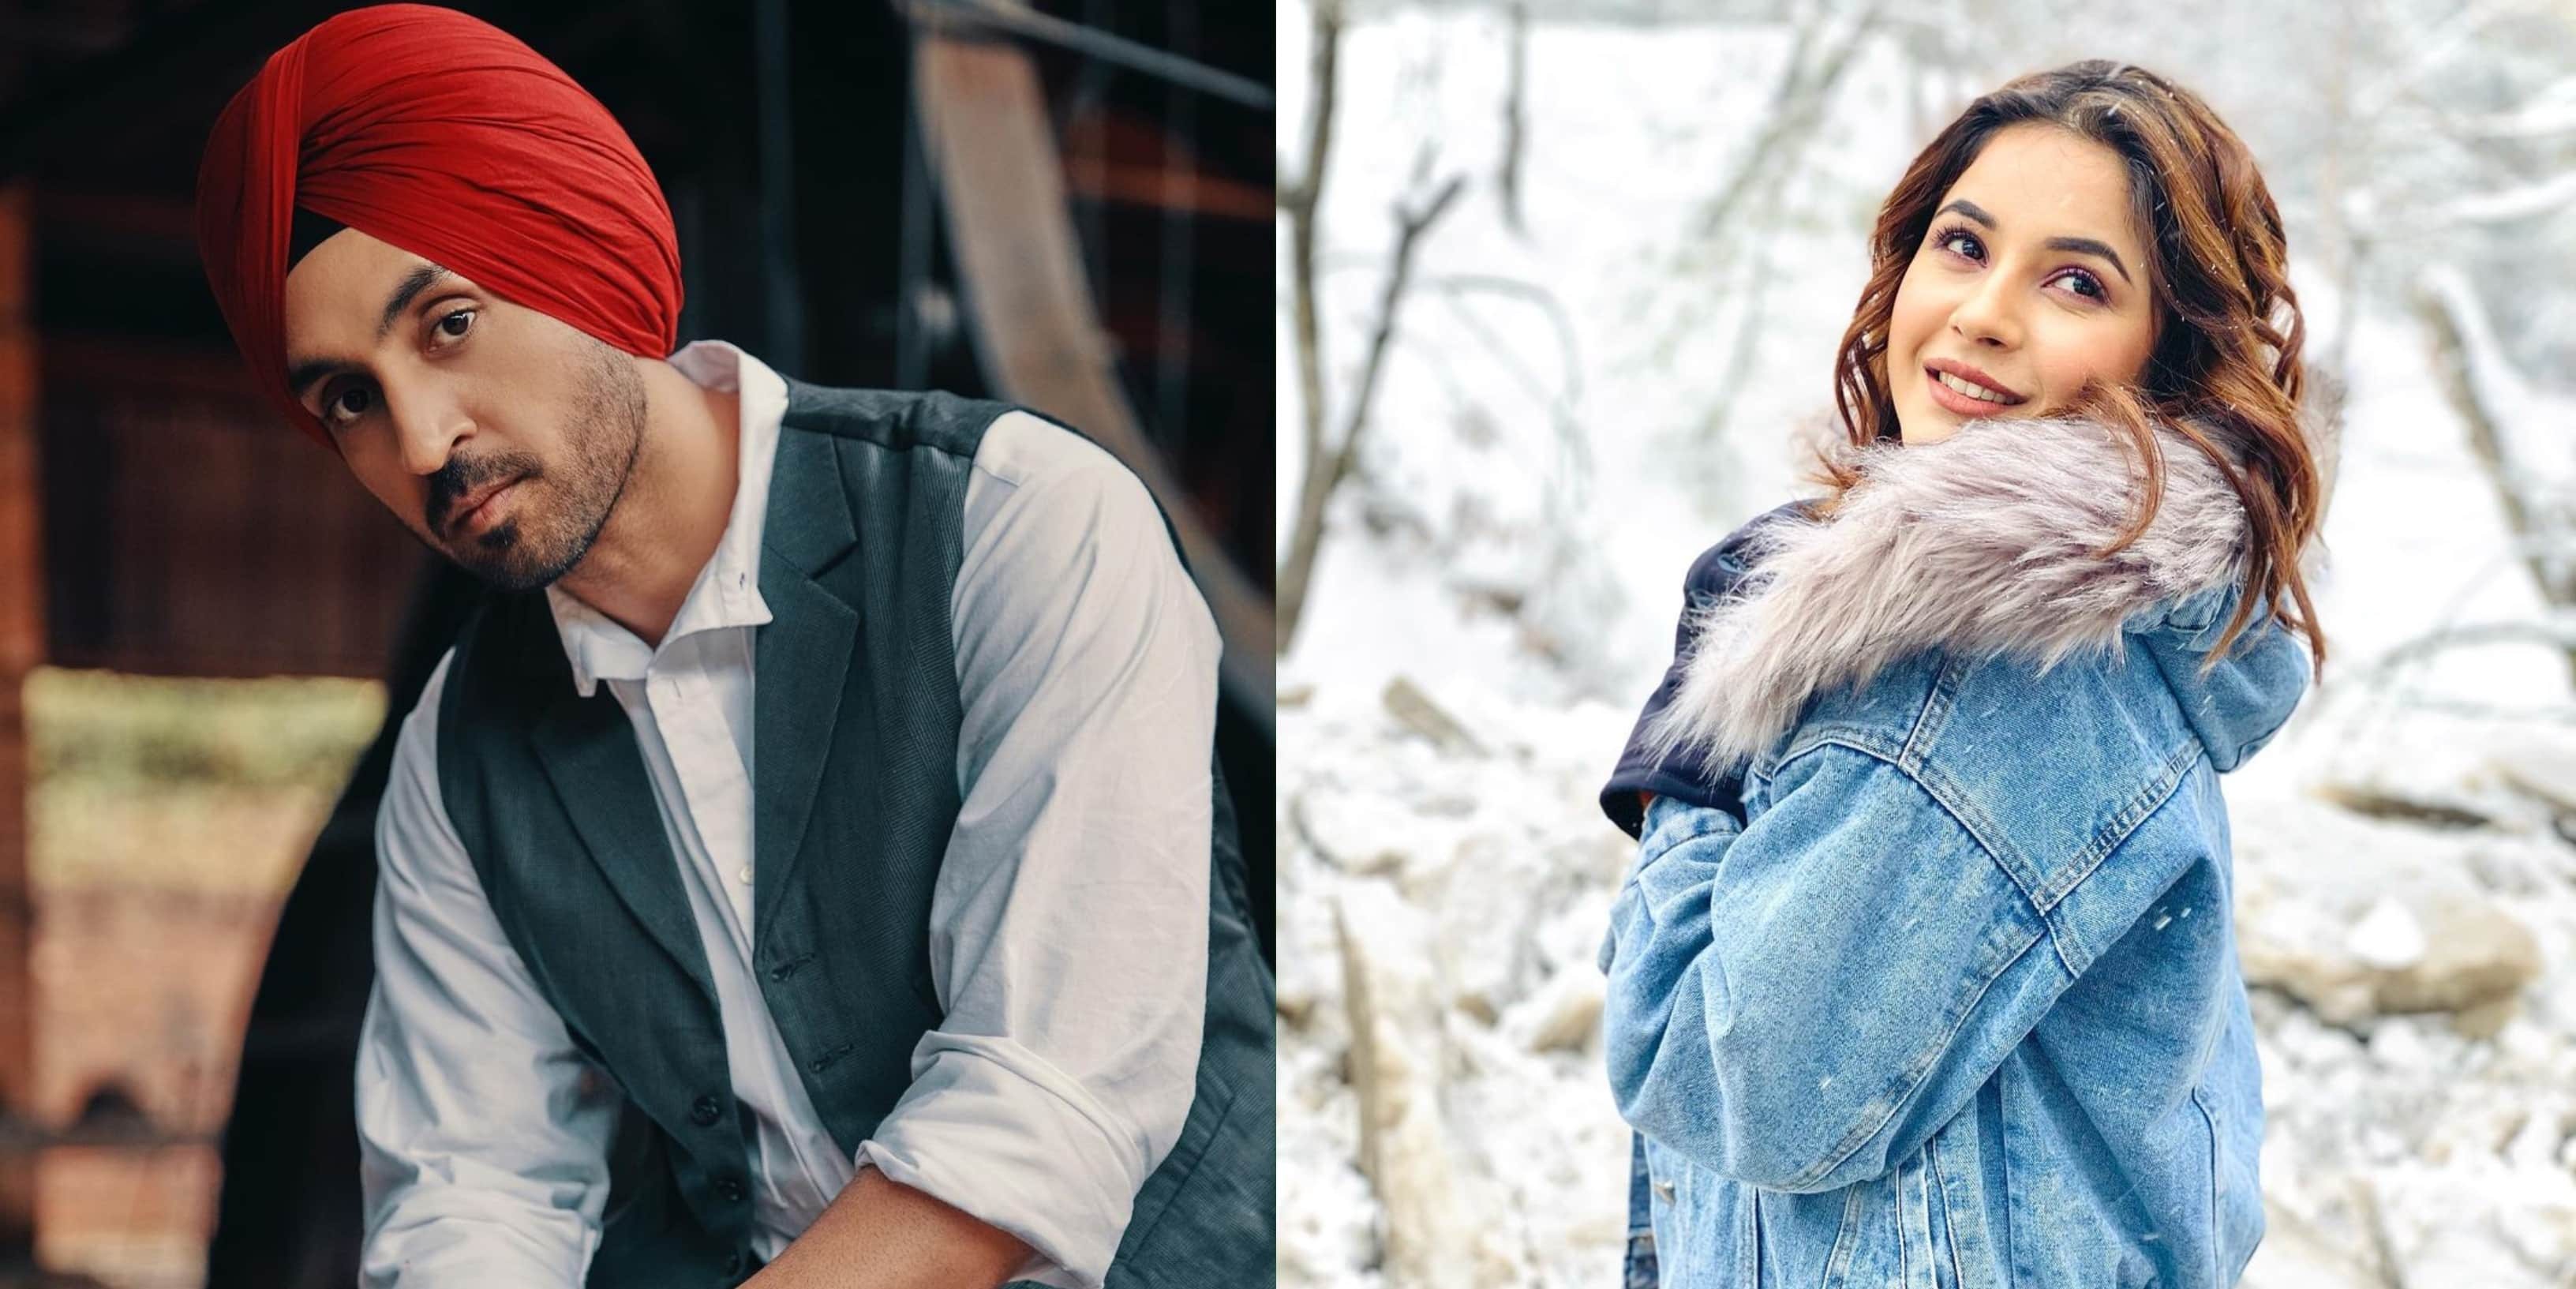 Shehnaaz Gill To Share The Screen With Diljit Dosanjh In Honsla Rakh; Film To Release On Dussehra